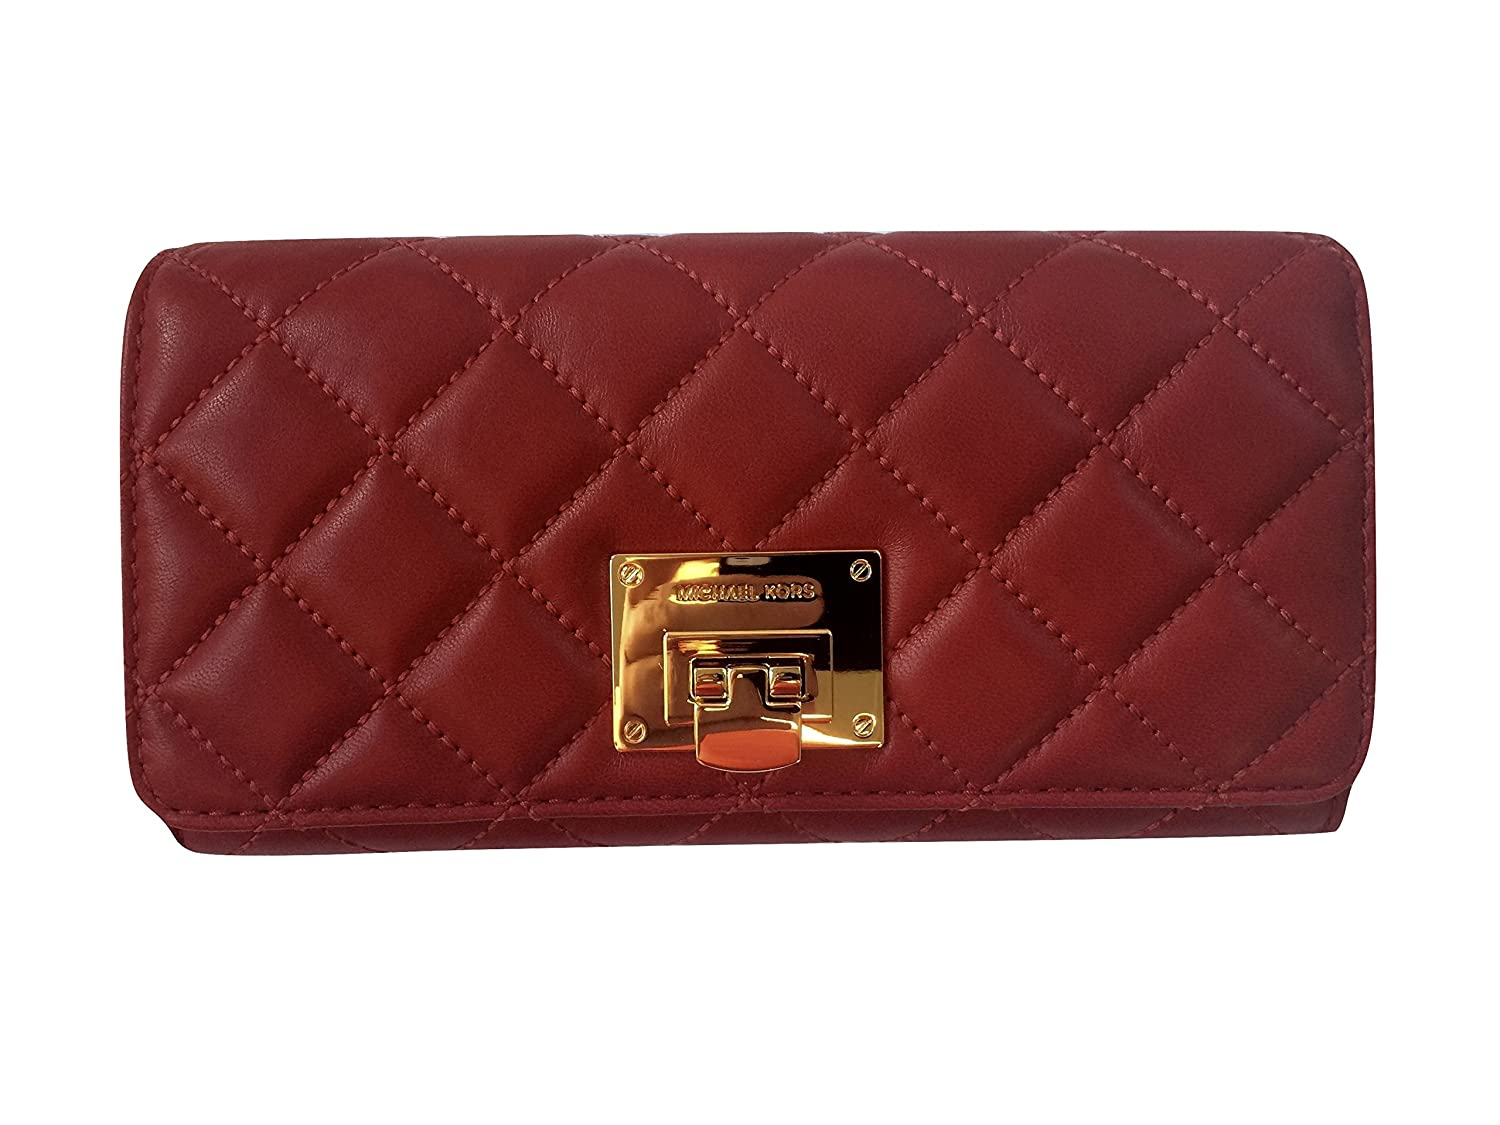 716c1fe34abb30 Soft quilted lambskin leather with polished golden tone hardware. Flap top  closure with Michael Kors engraved push lock closure